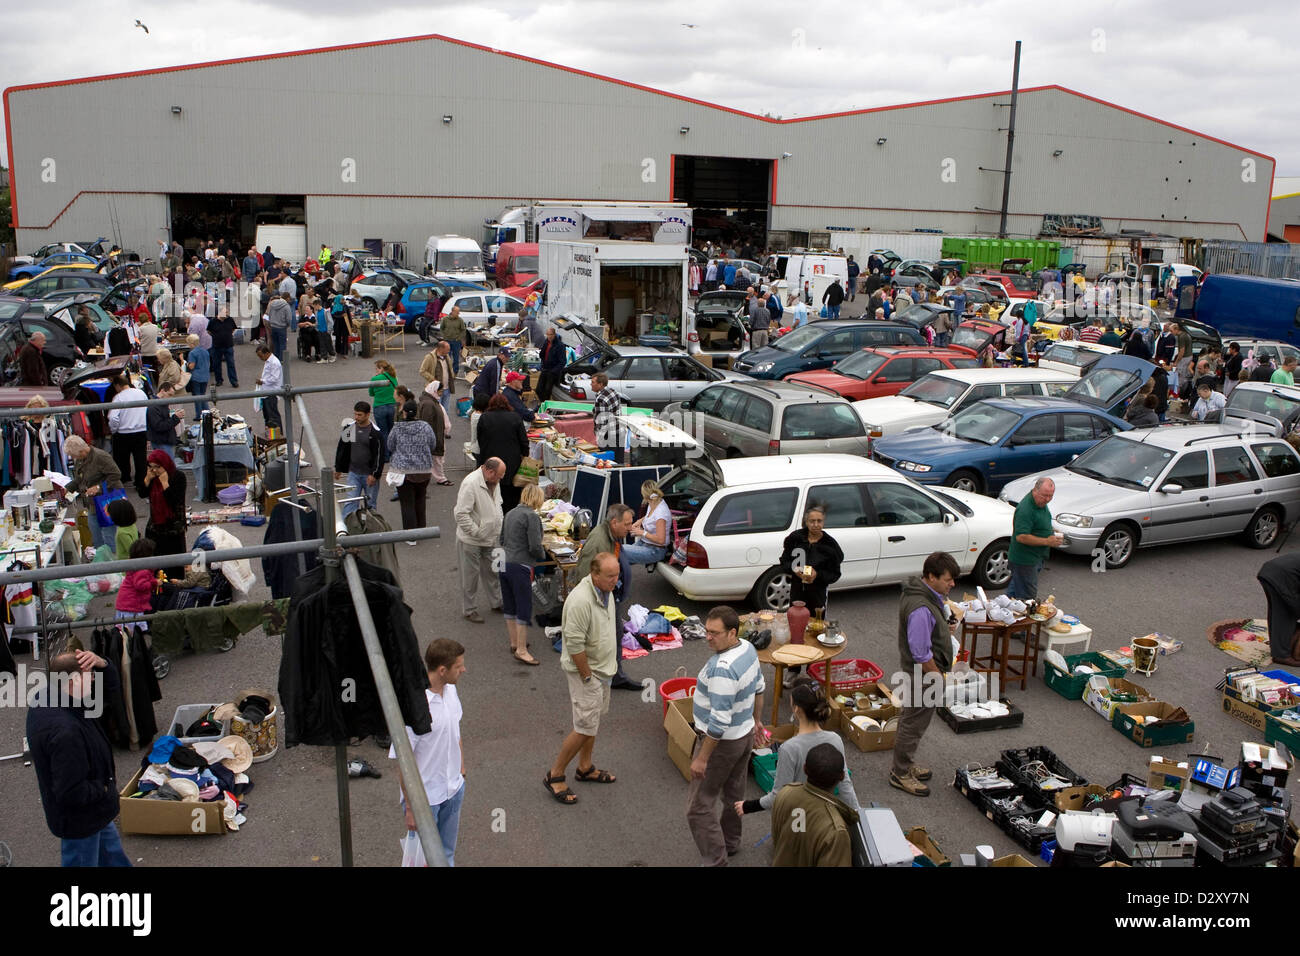 Buyers and sellers at the splott car boot sale on lewis road cardiff